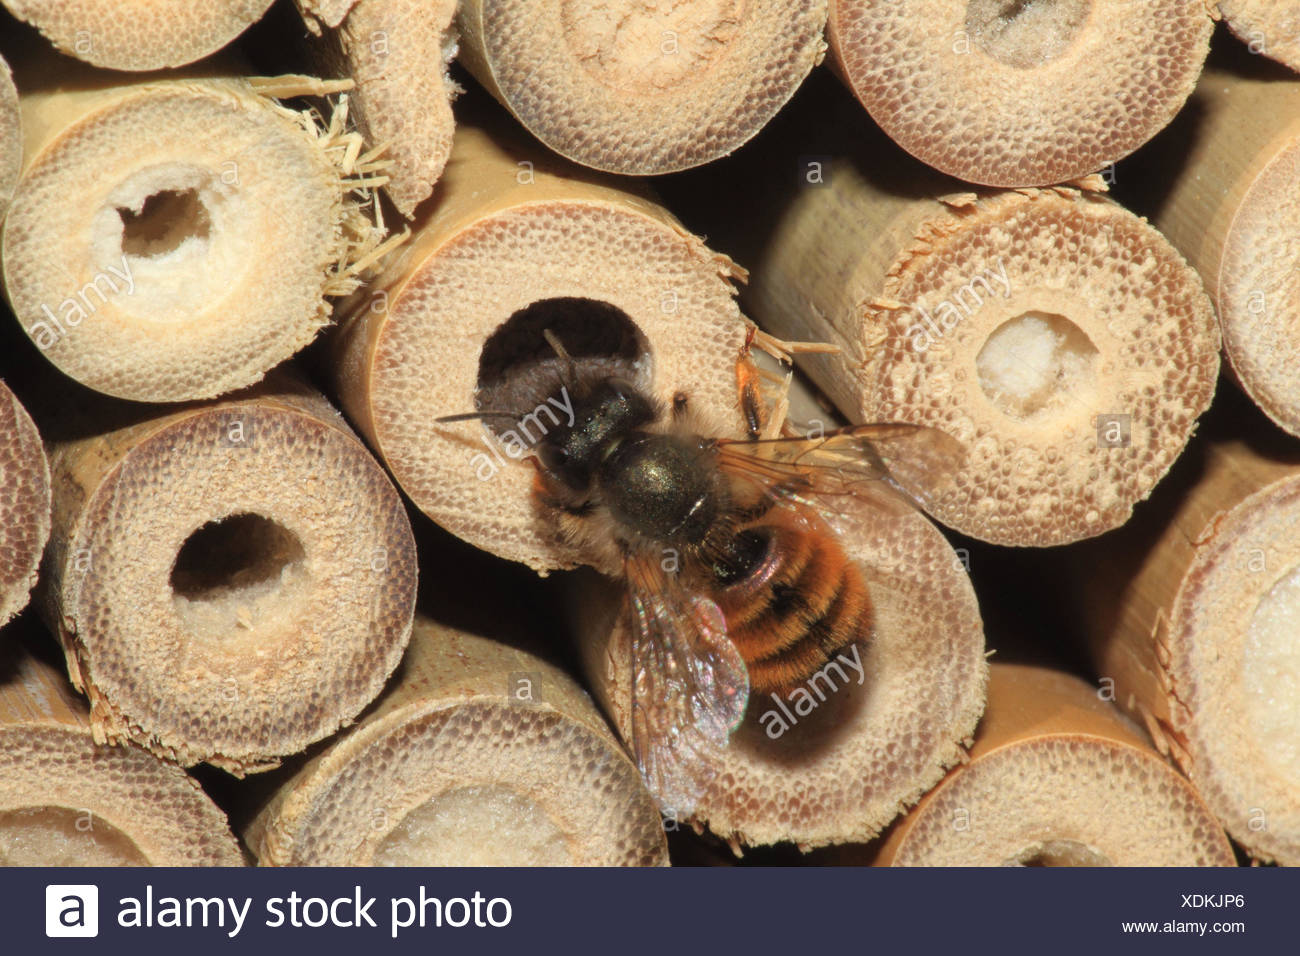 Defensive wall bee, brood pit, medium close-up, landscape format, insect, animal, wild animal, insect house, bee, Germany, - Stock Image